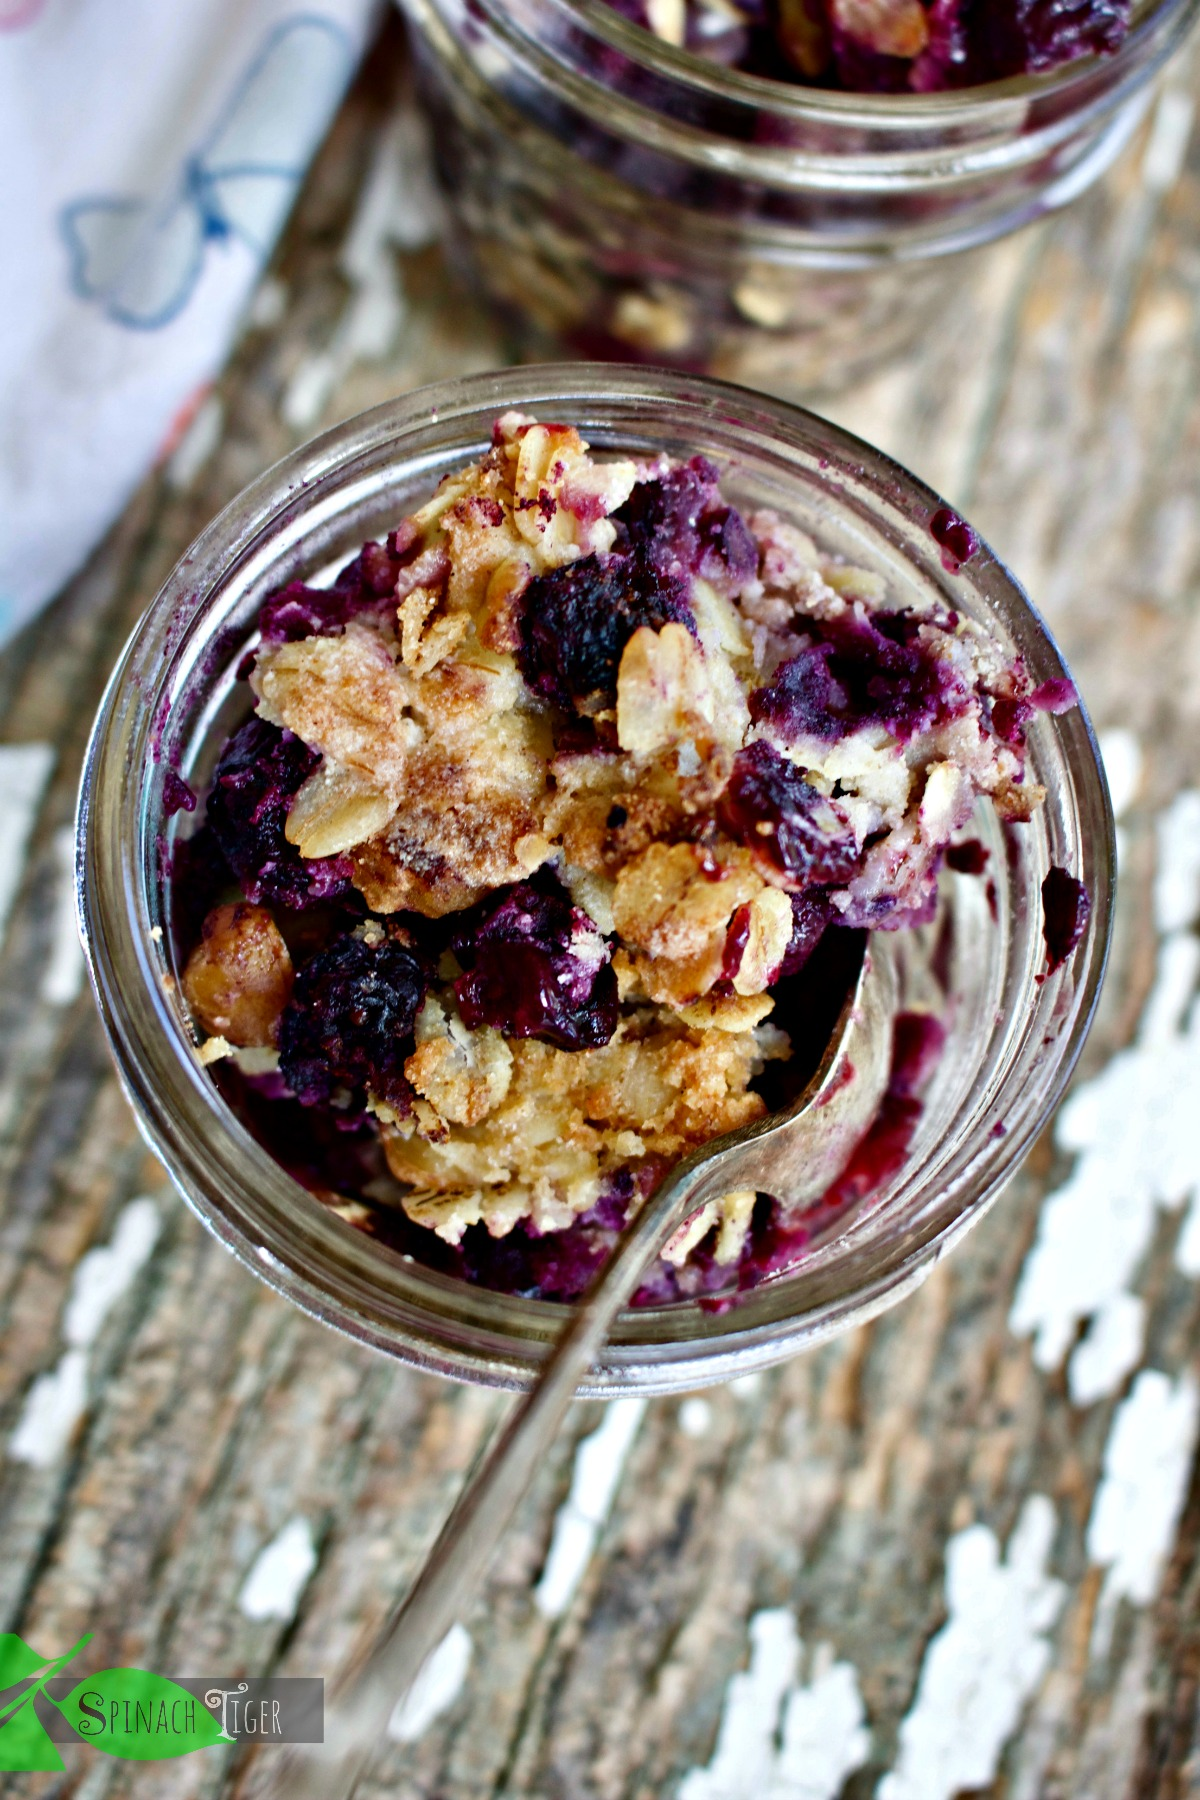 How to Make Blueberry Crisp Recipe. Easy and Gluten Free from Spinach Tiger